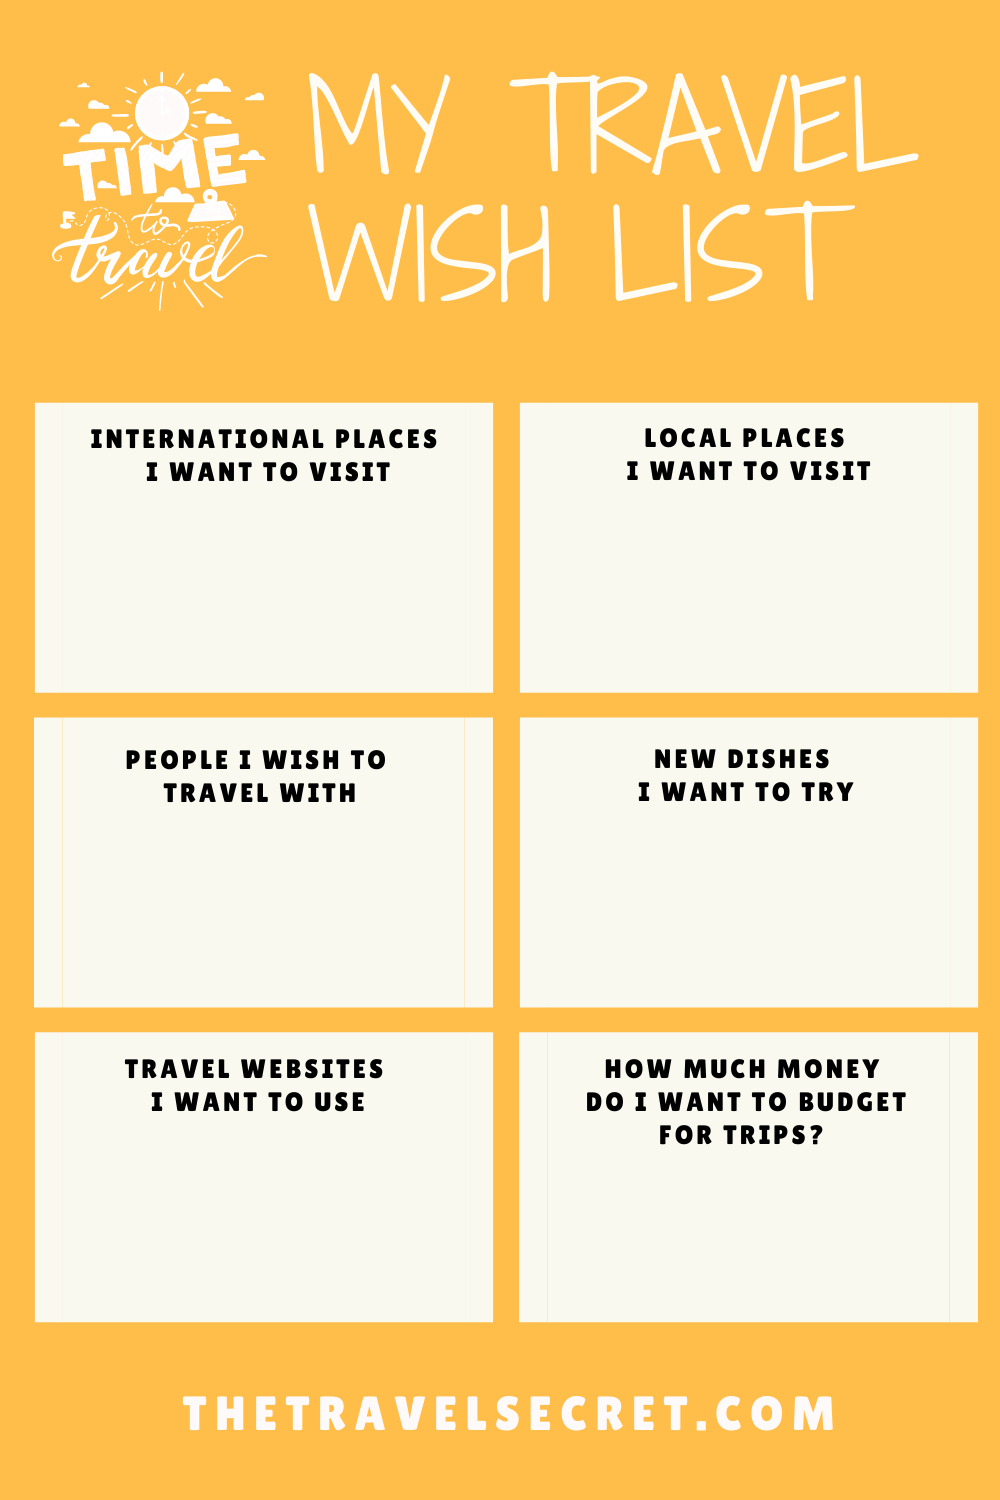 Travel wish list for 2021